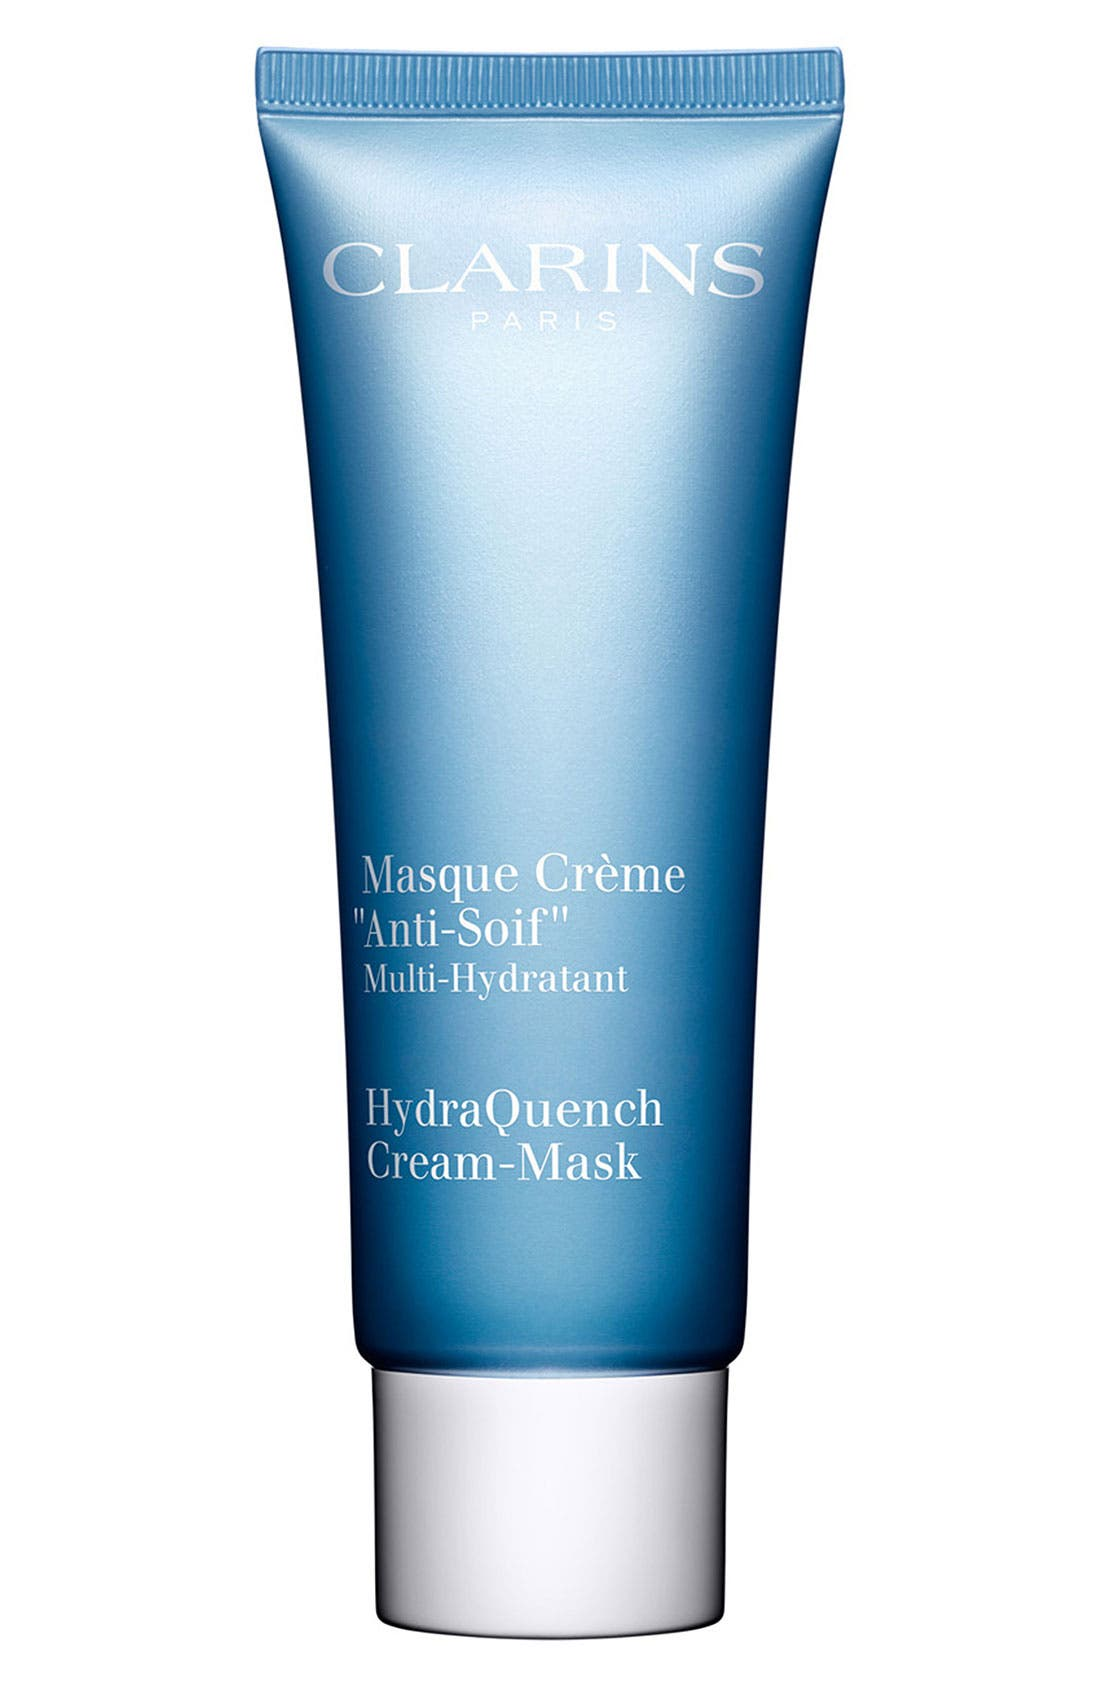 Clarins 'HydraQuench' Cream-Mask